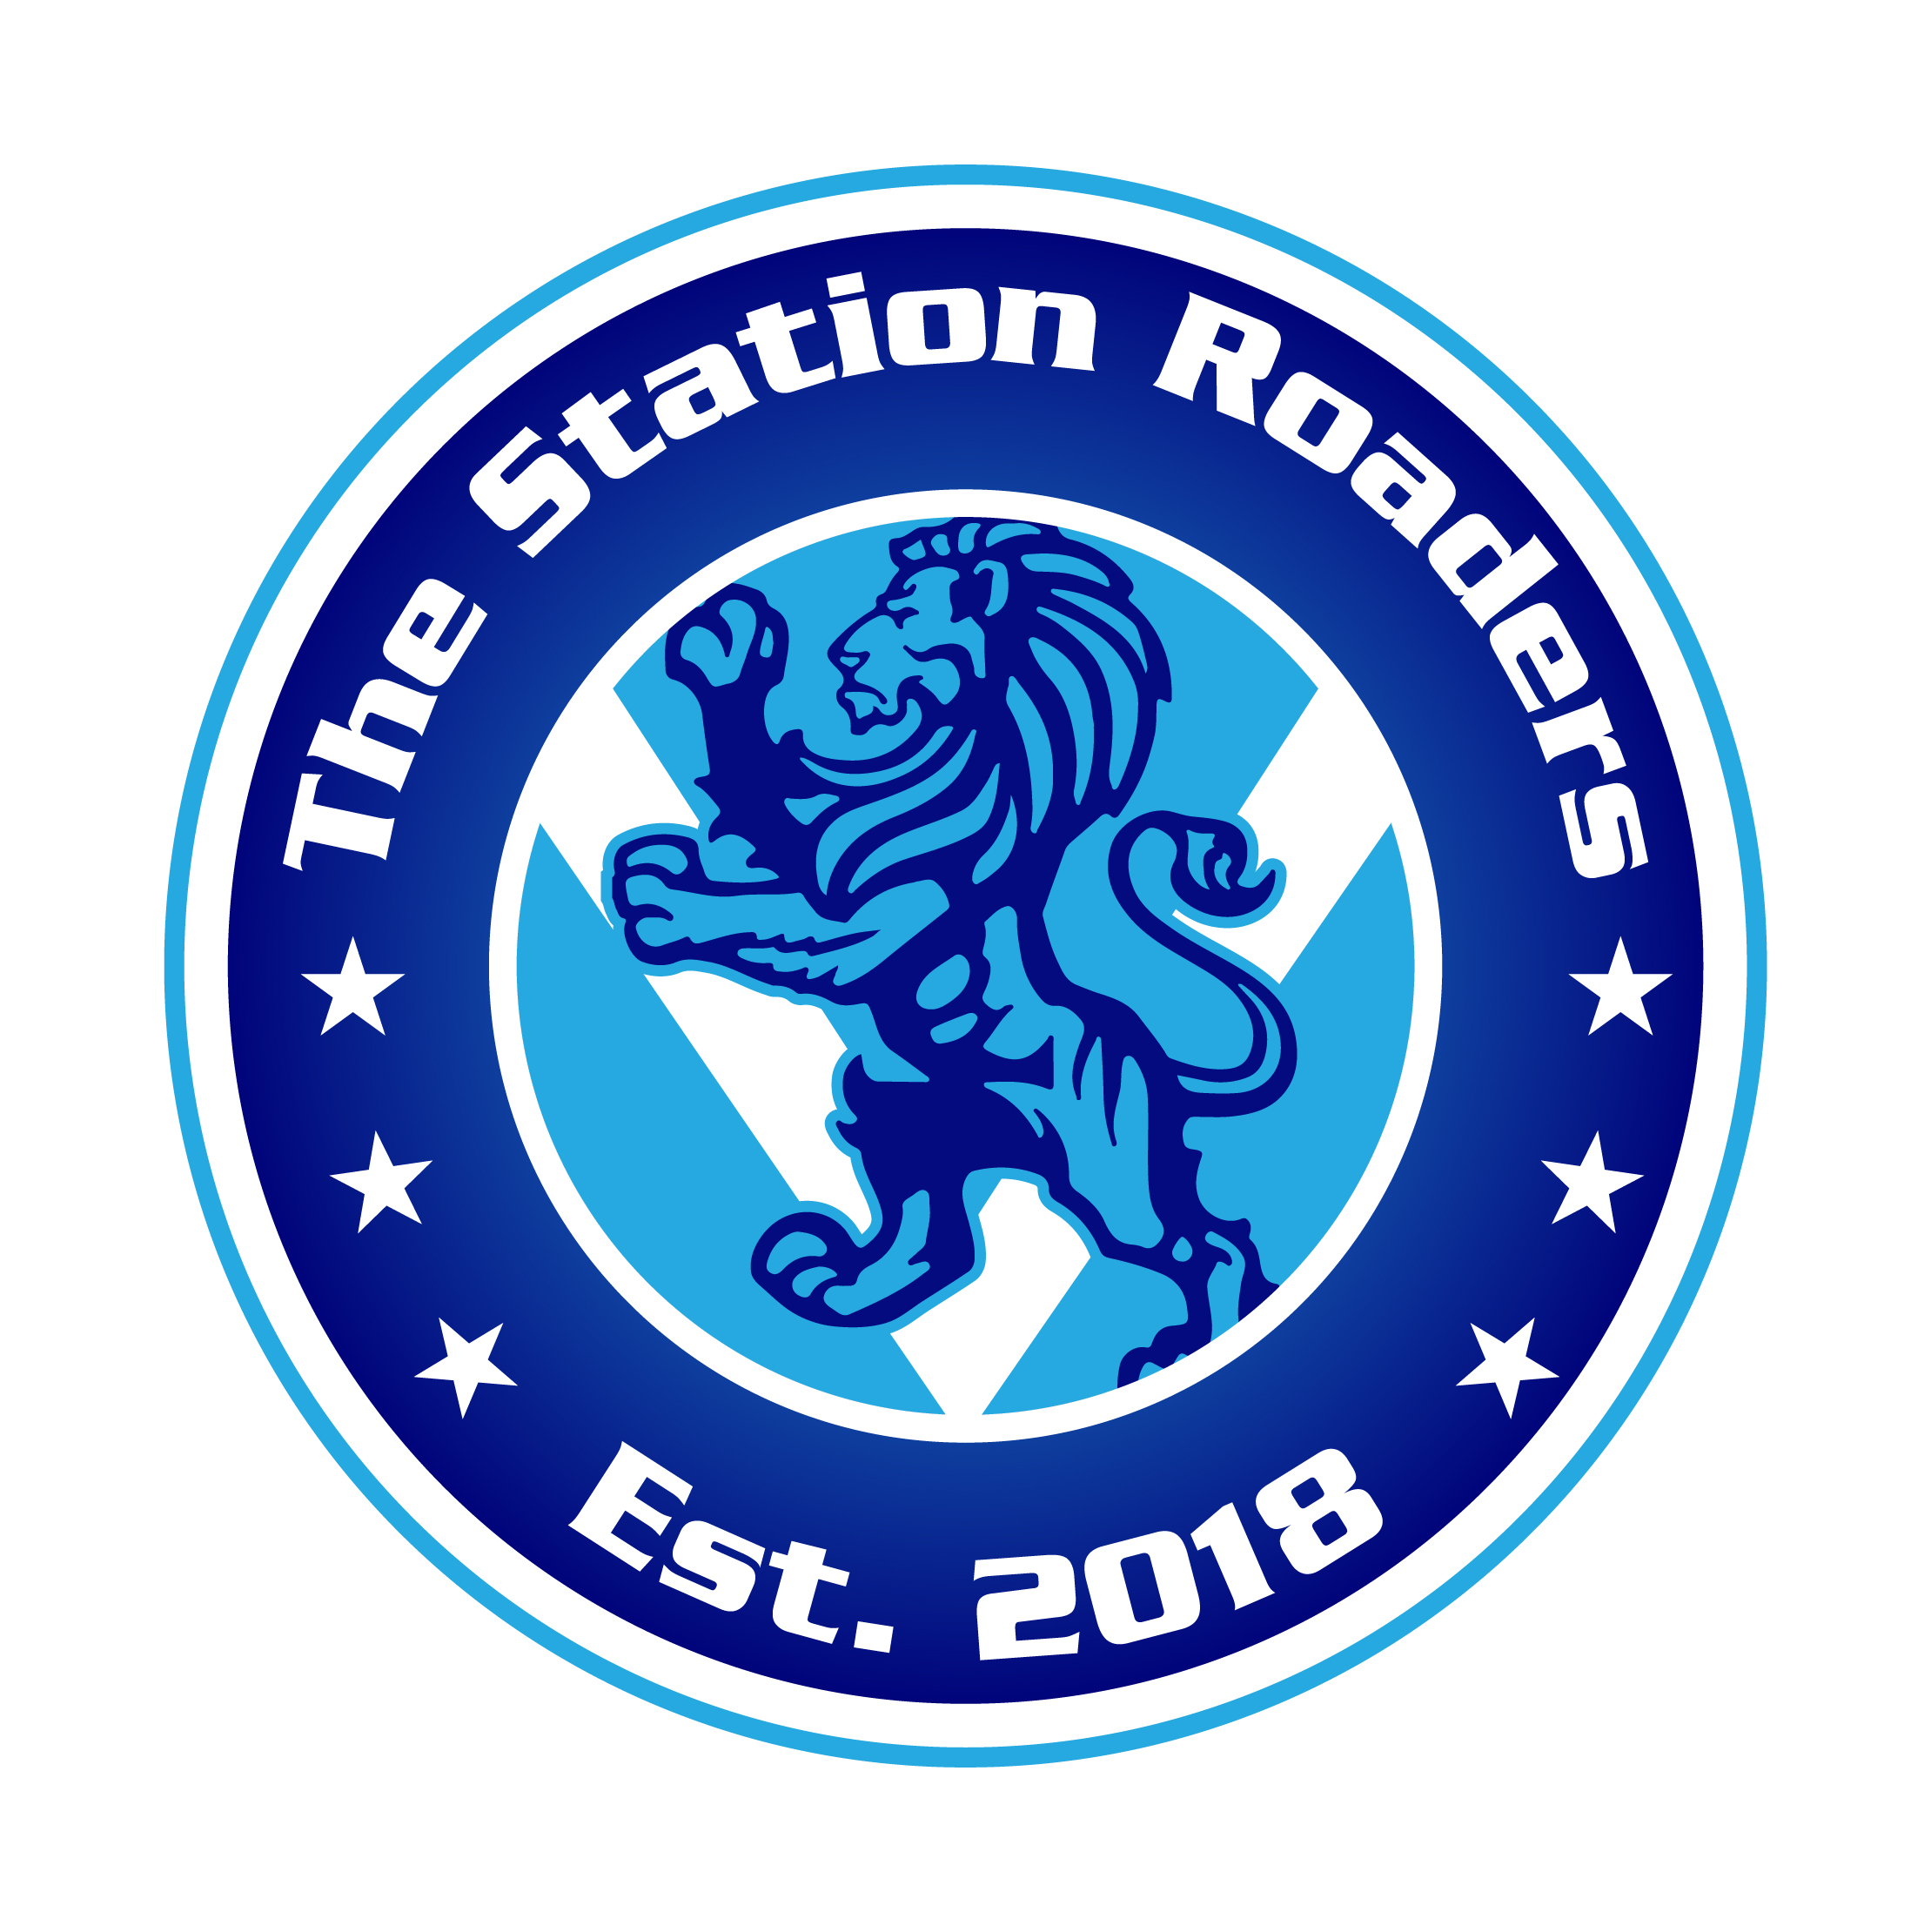 The Station Roaders